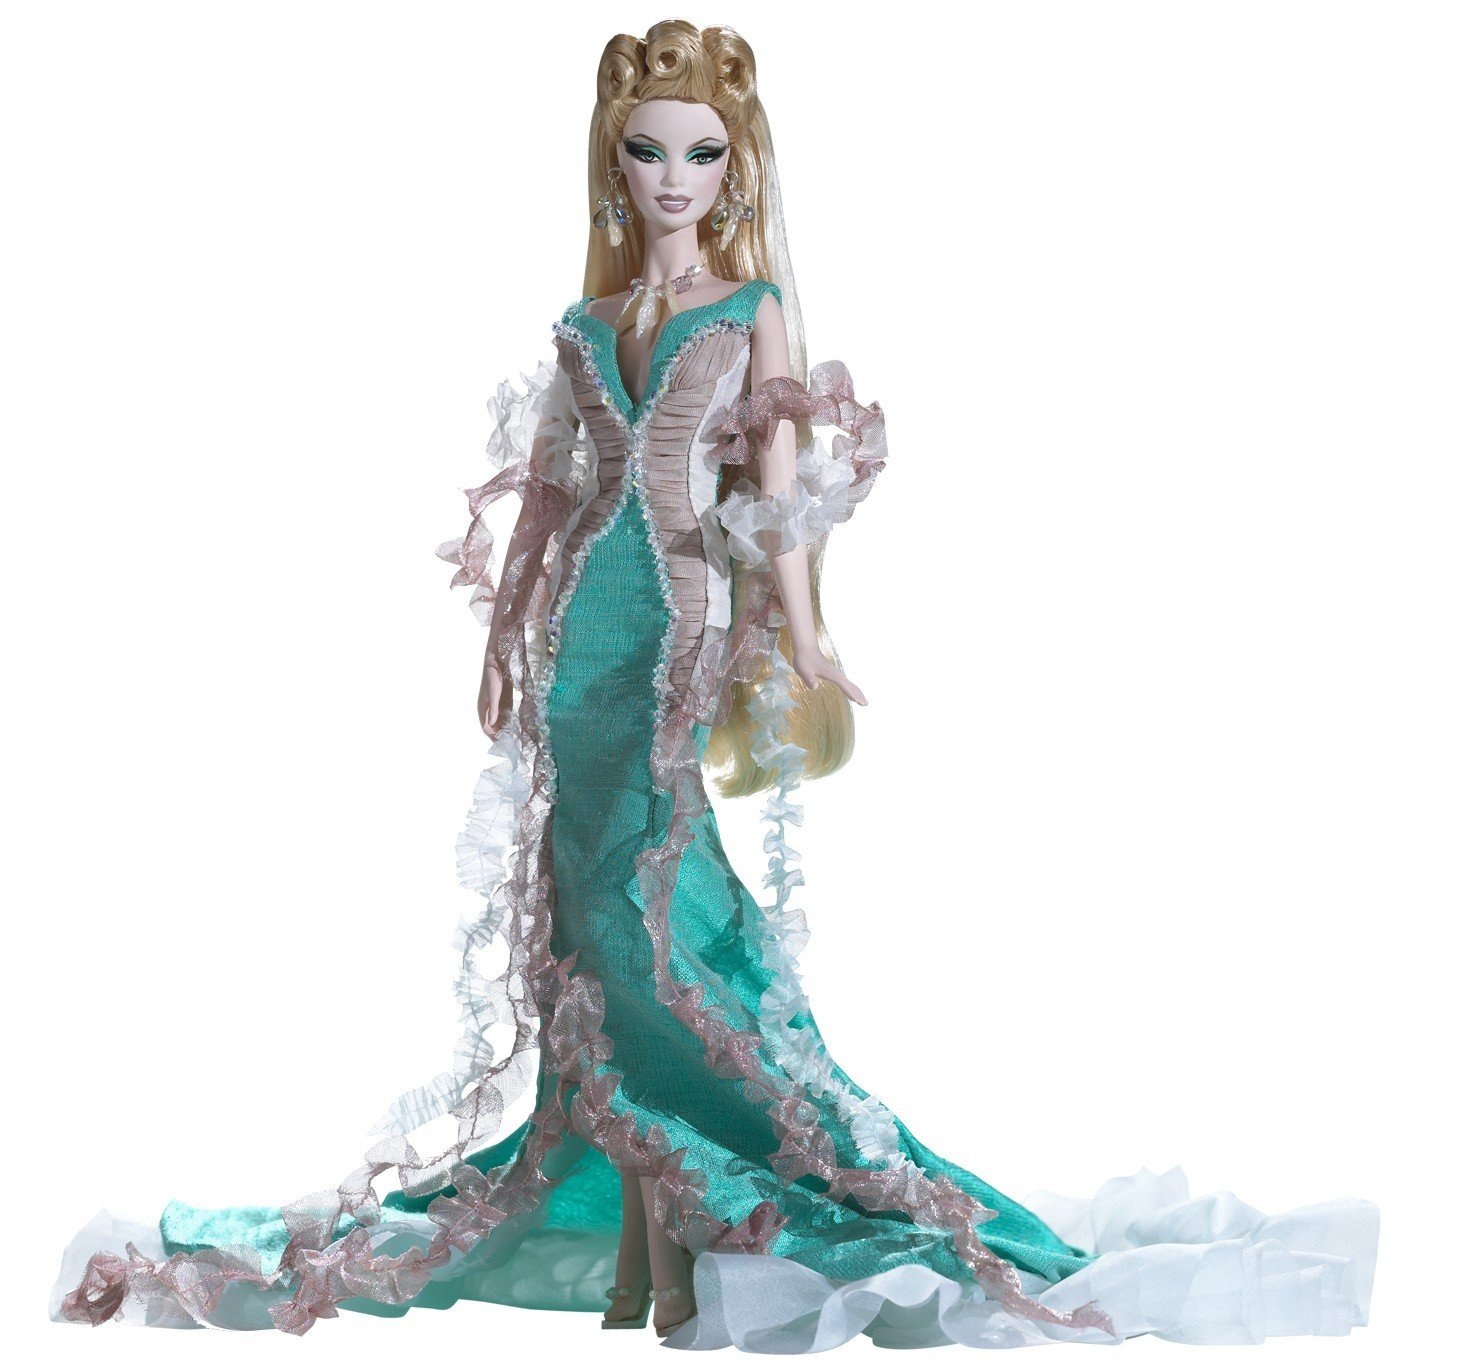 beauty and jealousy in the story of medusa and the greek goddess athena Ask any man about the story of medusa and he will speak of athena's jealousy how she, enraged, cursed the gorgon after she seduced poseidon with her beauty.